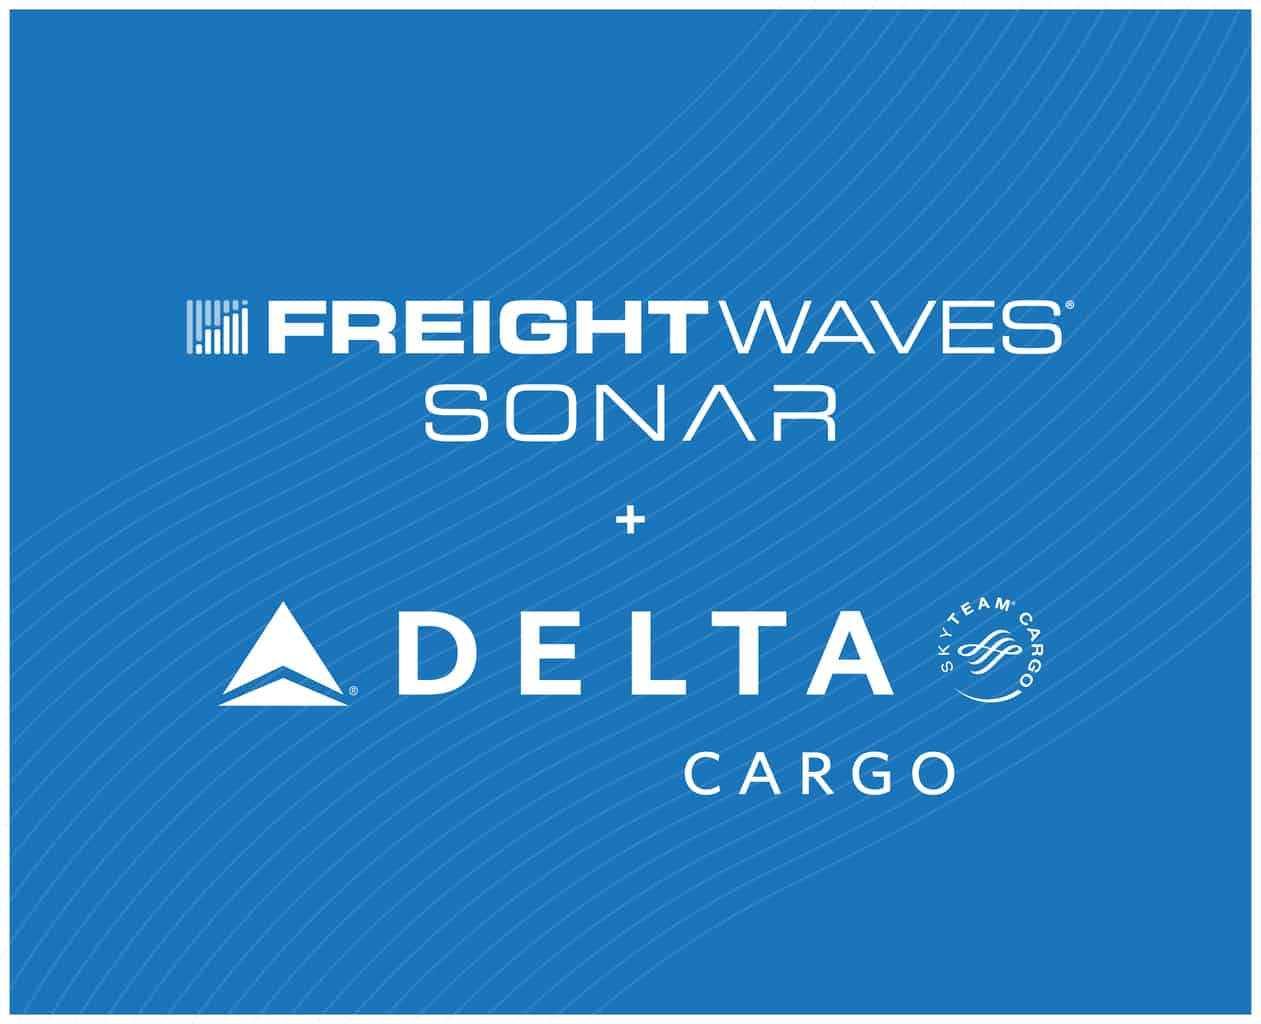 Delta Cargo chooses FreightWaves SONAR for global freight